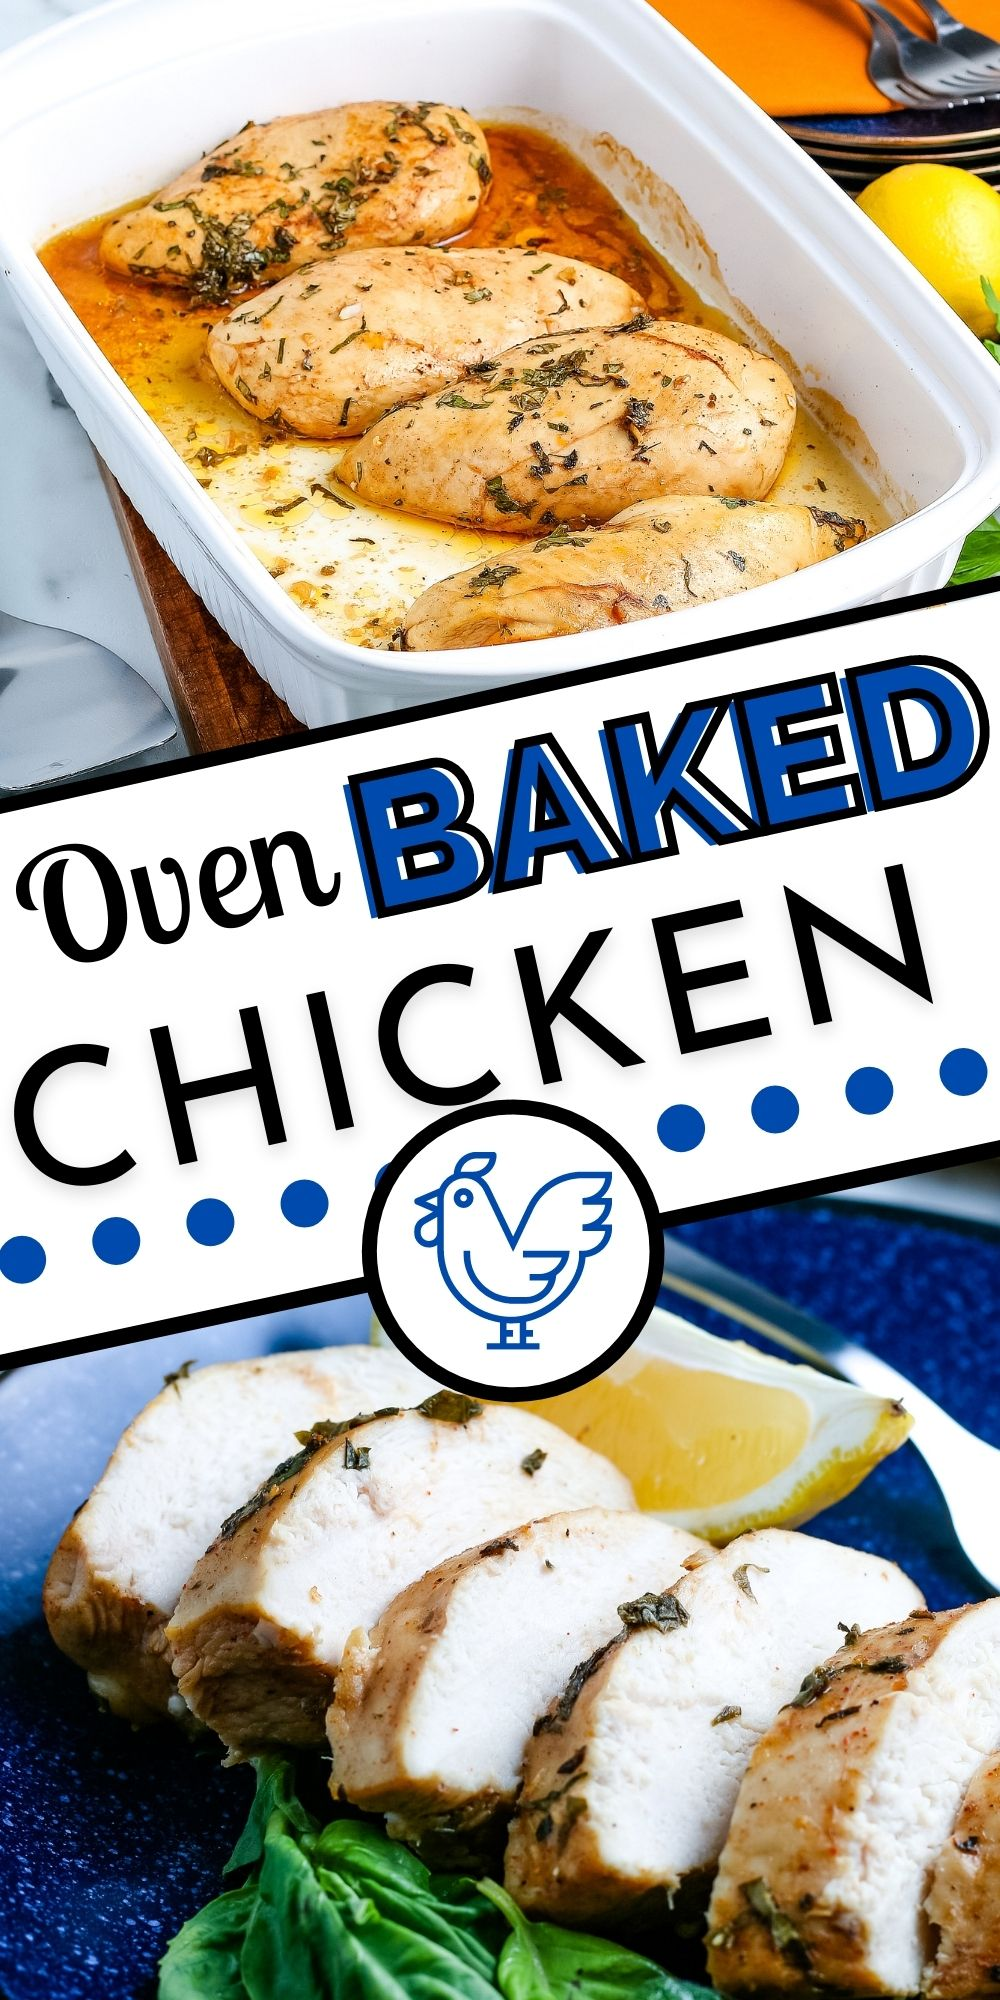 This Oven Baked Boneless Chicken Breast recipe makes the juiciest and most flavorful chicken. It's easy to make, and it's my go-to chicken recipe.  via @foodfolksandfun